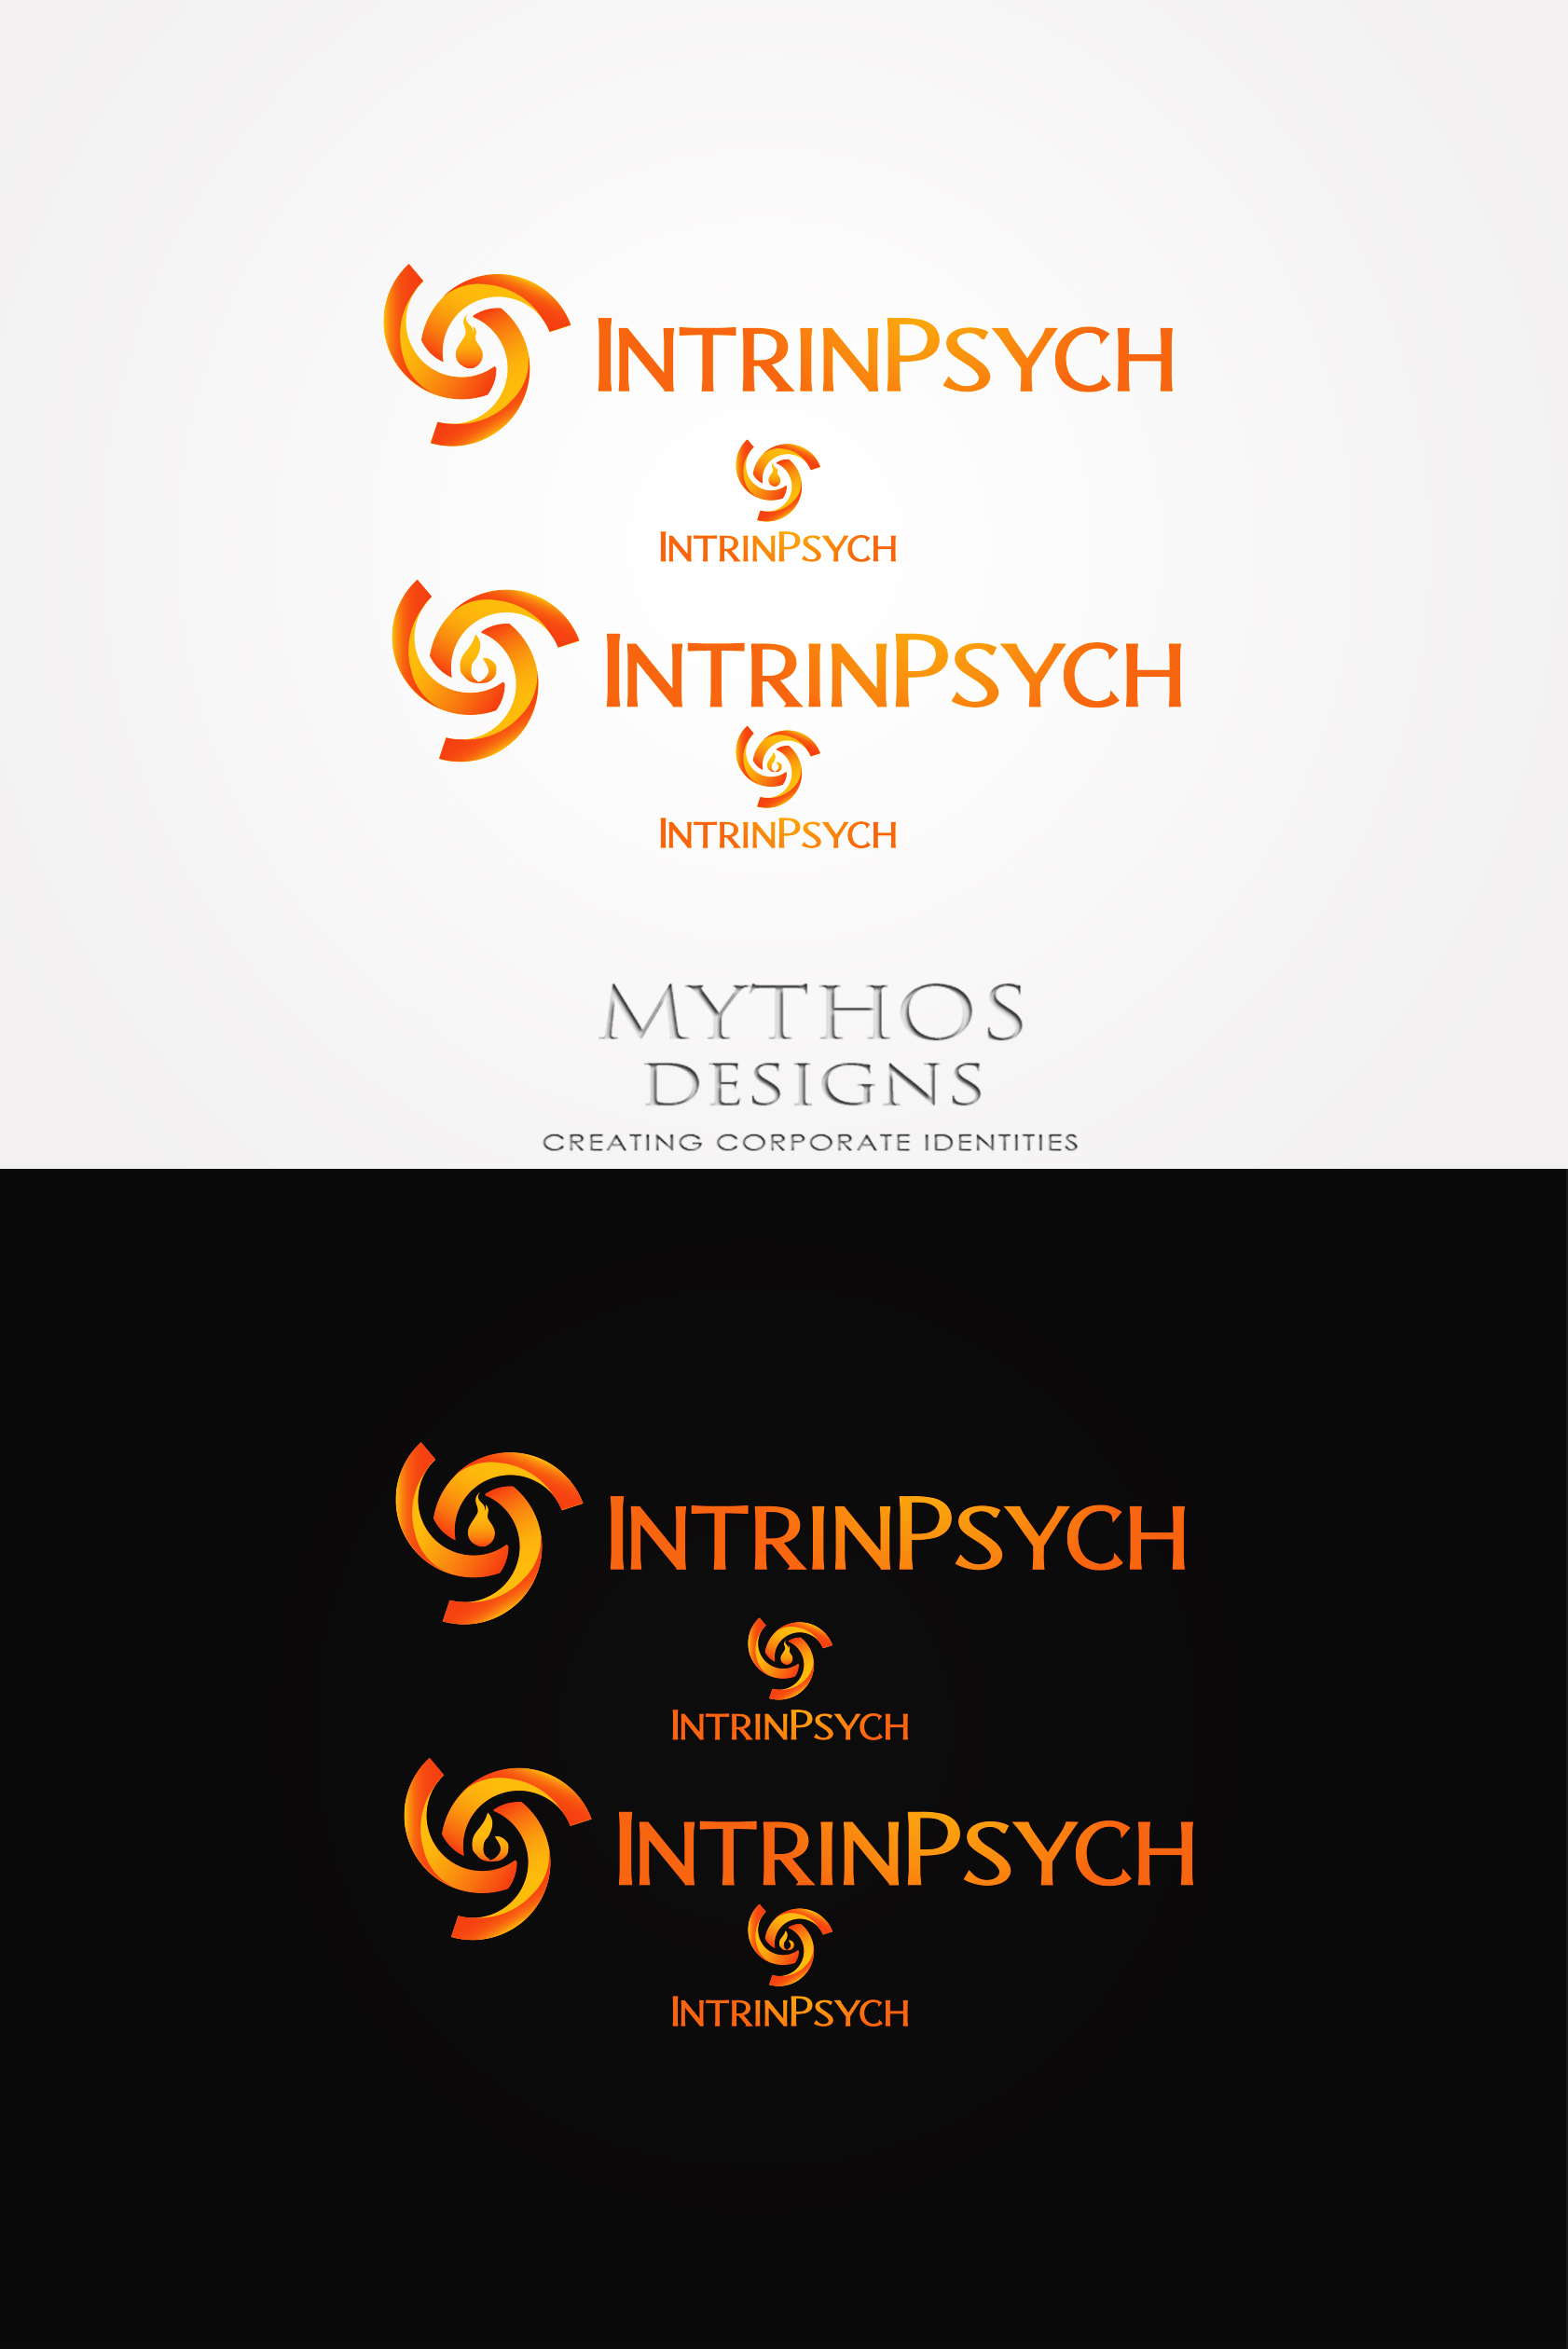 Logo Design by Mythos Designs - Entry No. 121 in the Logo Design Contest New Logo Design for IntrinPsych.